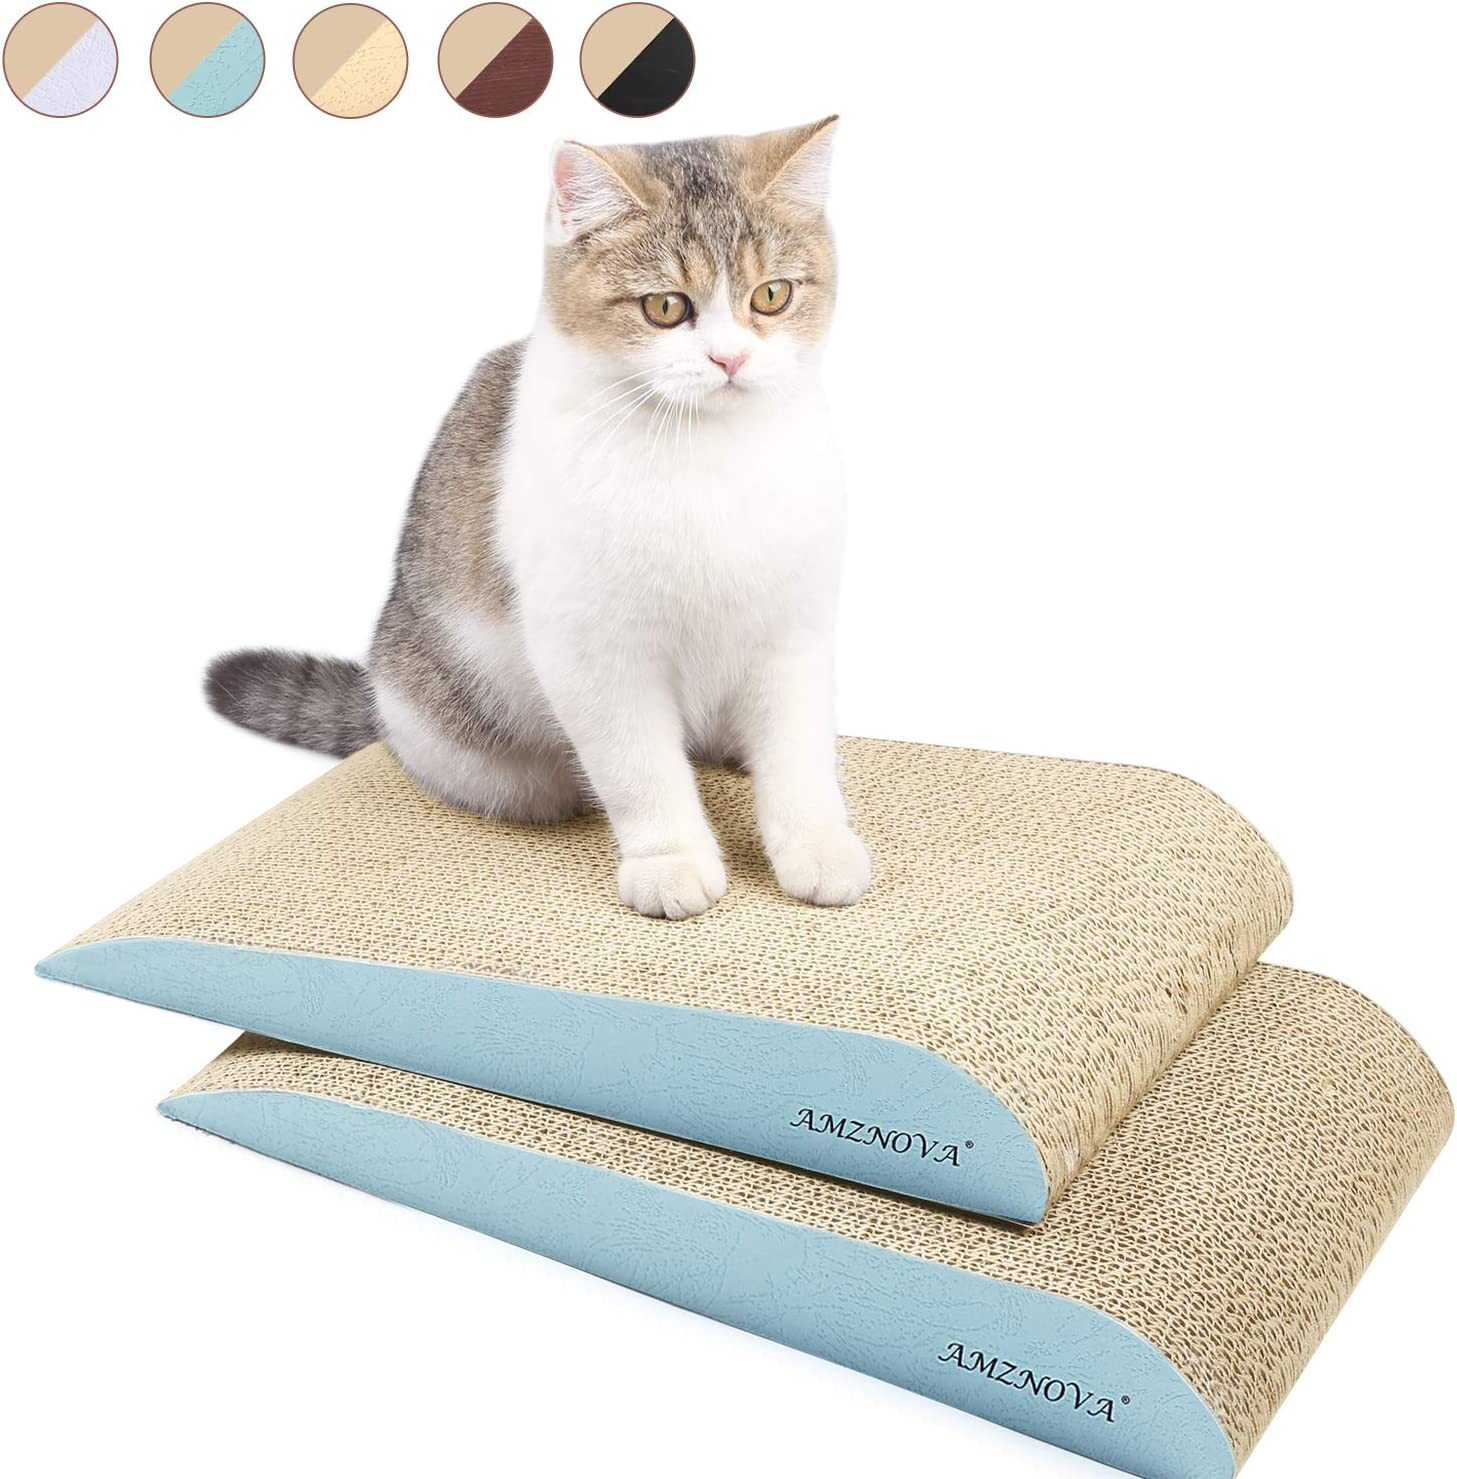 Amznova Cat Scratcher Ramp Inclined Corrugated Cardboard Kitty Scratching Pad Lounge With Bottom Catnip Included 2 Pack Baby Blue Amazon Co Uk Pet Supplies